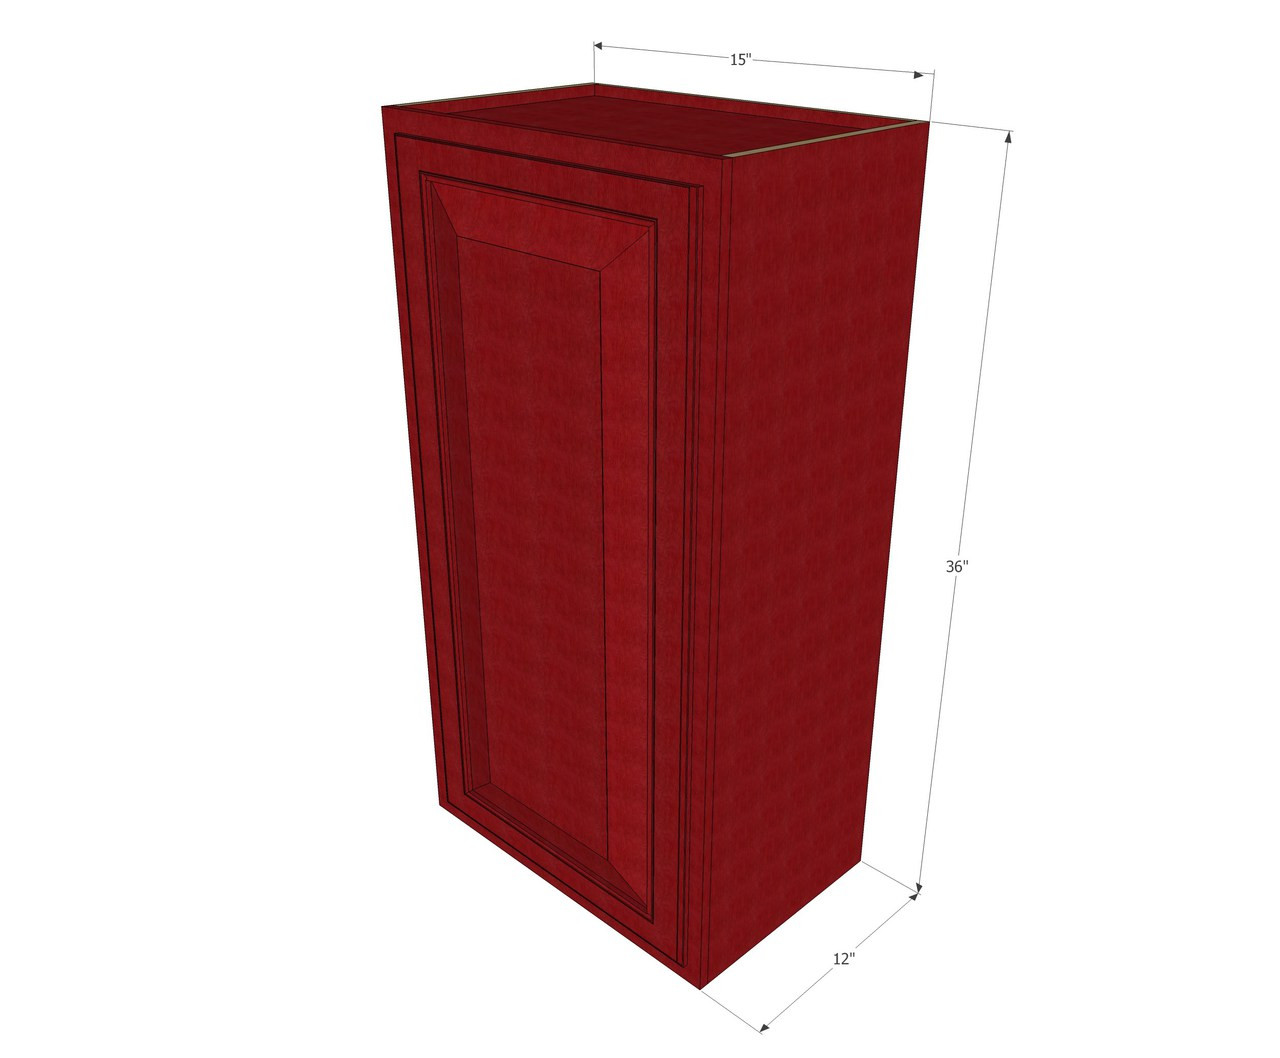 Small Single Door Grand Reserve Cherry Wall Cabinet 15 Inch Wide X 36 Inch High Kitchen